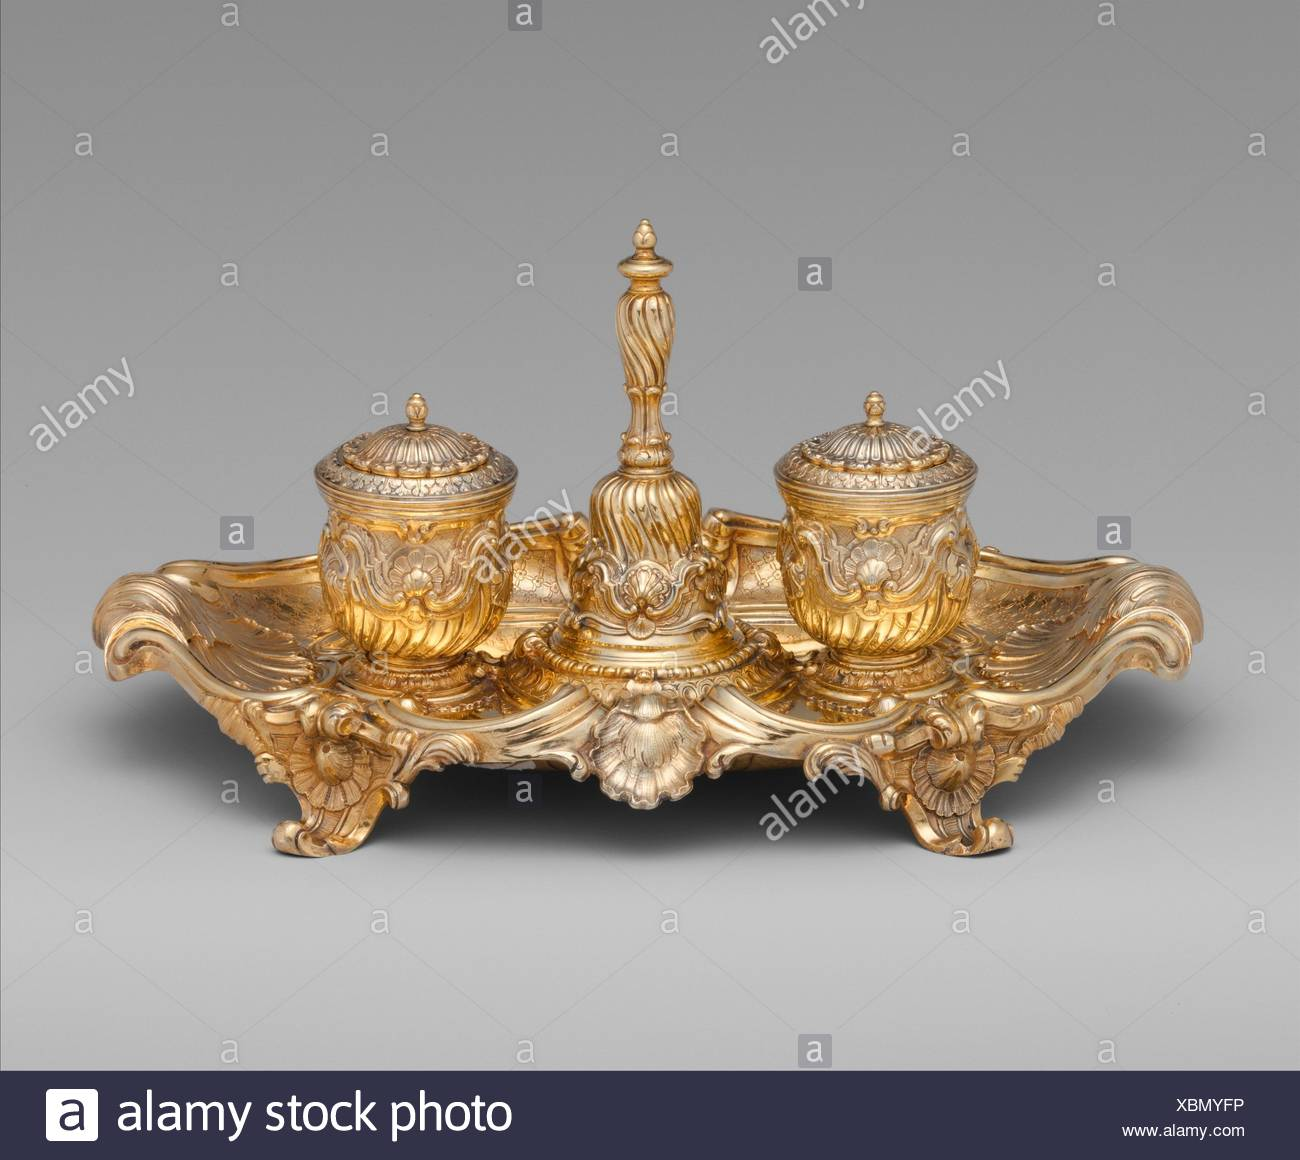 Inkstand. Maker: Probably by Andrea Boucheron (ca. 1701?-1761); Date: ca. 1753; Culture: Italian, Turin; Medium: Silver gilt; Dimensions: 6 x 13 in. - Stock Image